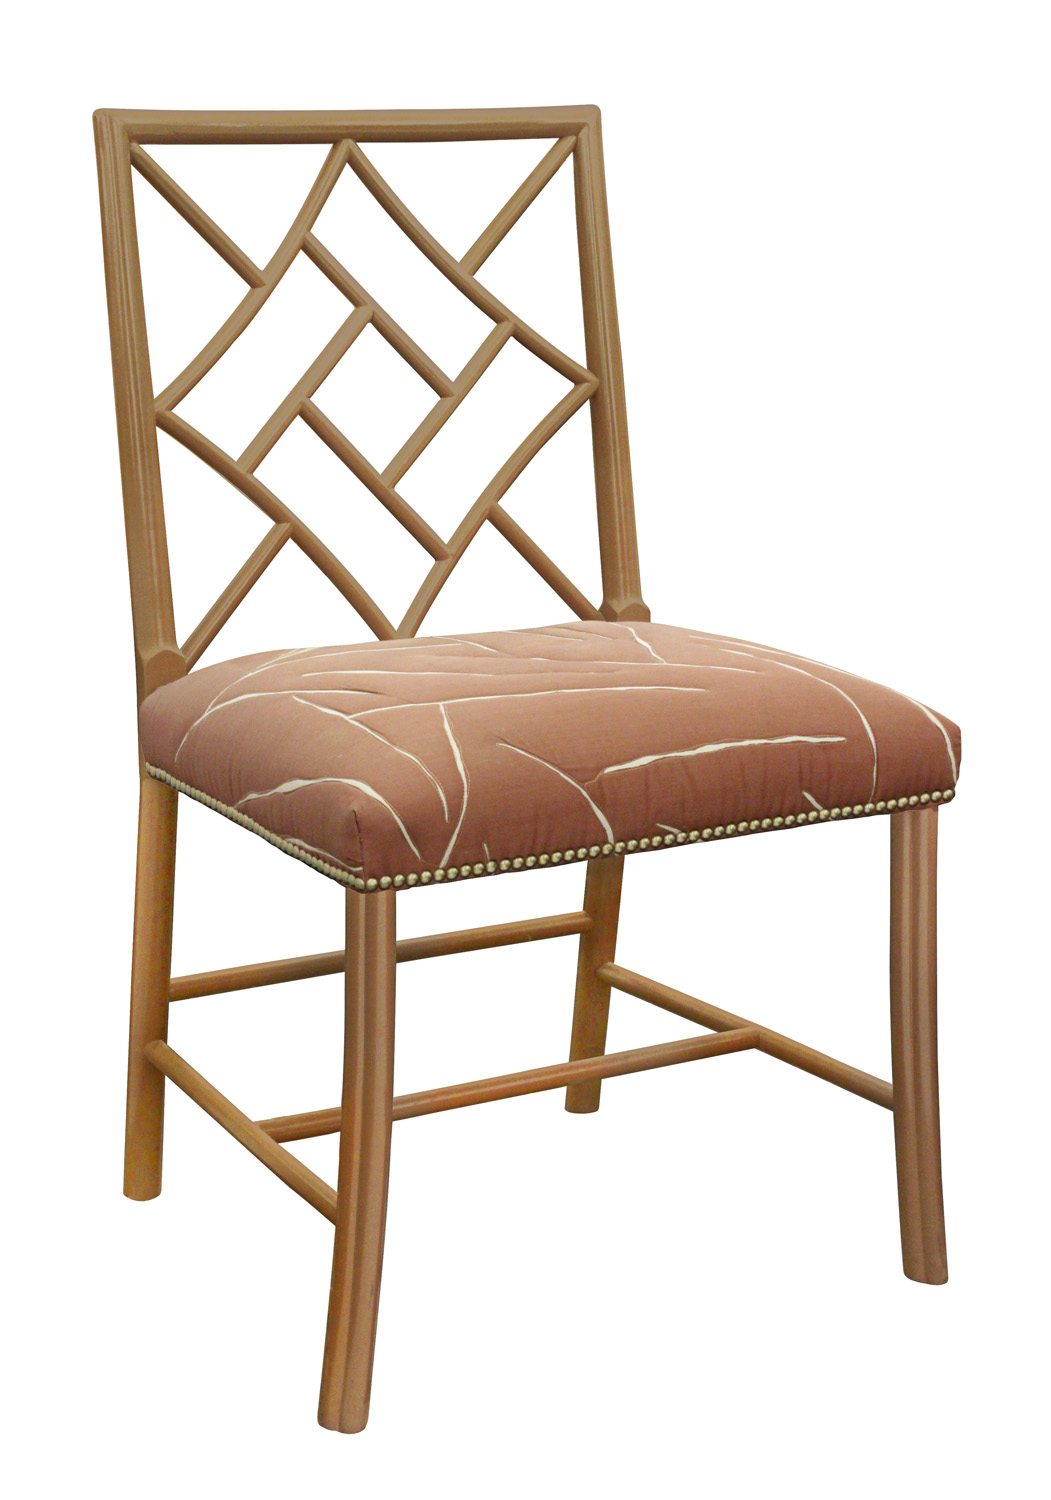 70s 180 Haines mnnr set8 brown lqr diningchairs165 detail1 hires.jpg